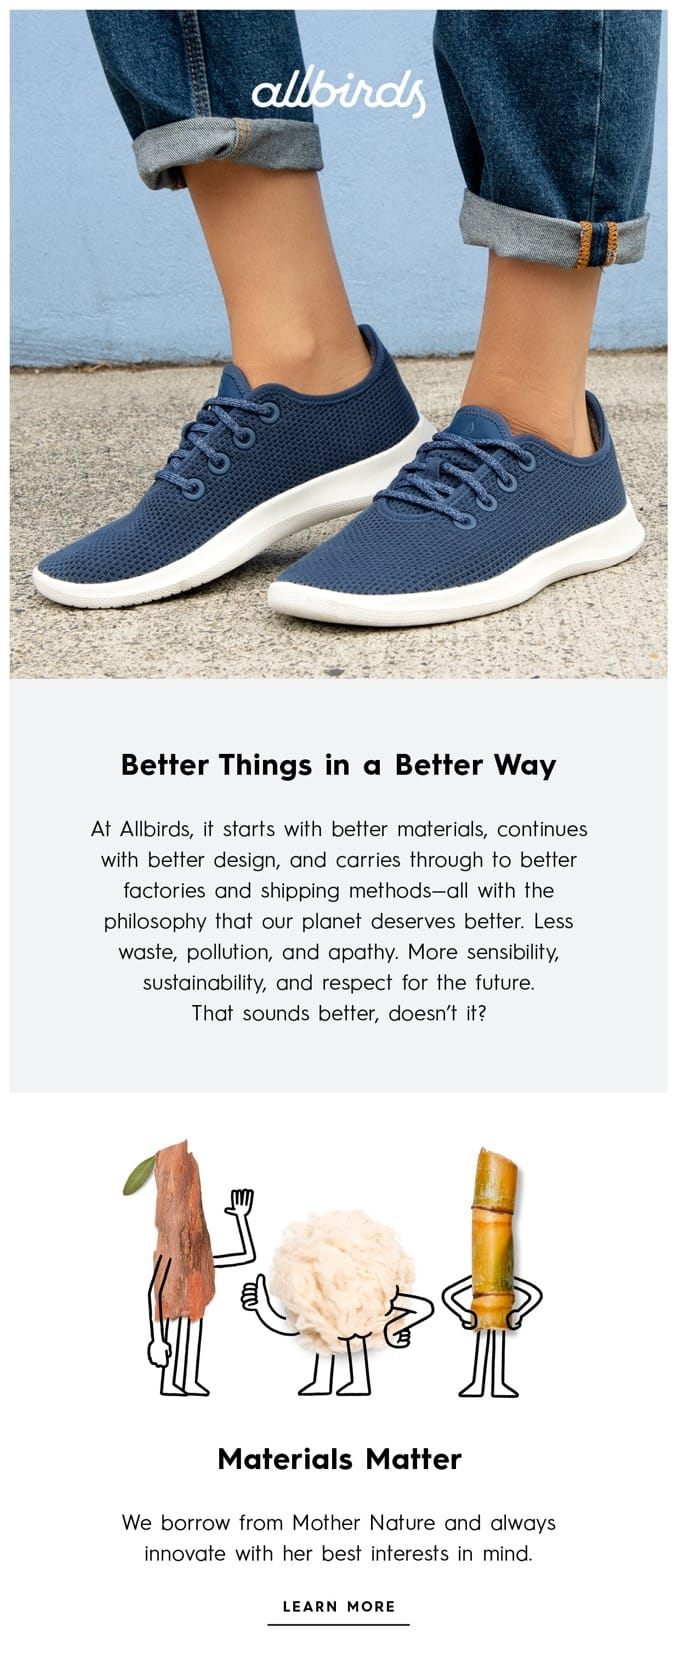 email example allbirds